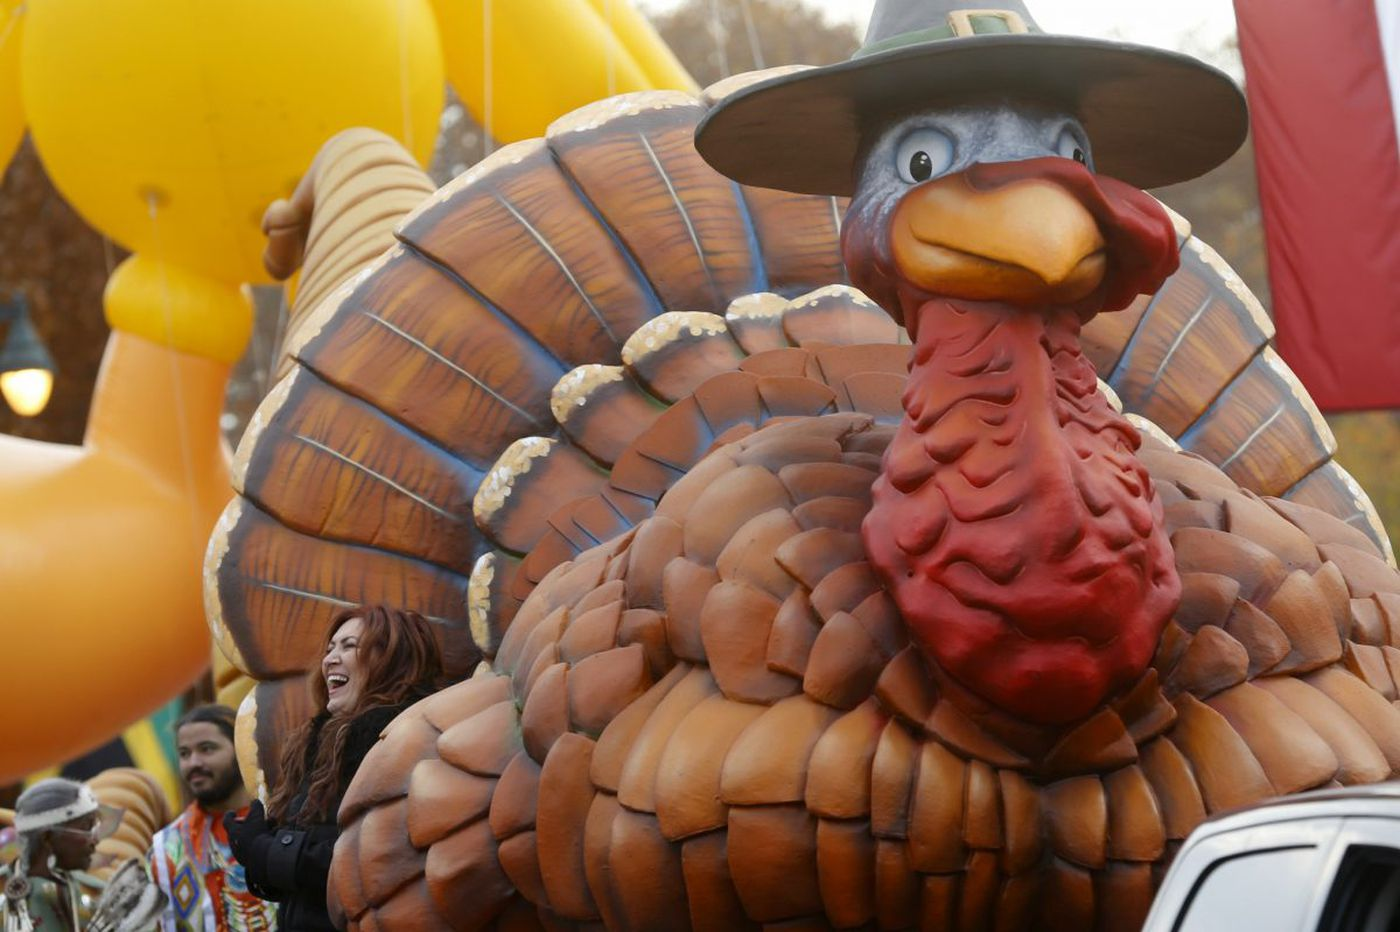 Thanksgiving weather forecast looking good - but chilly - in Philadelphia area